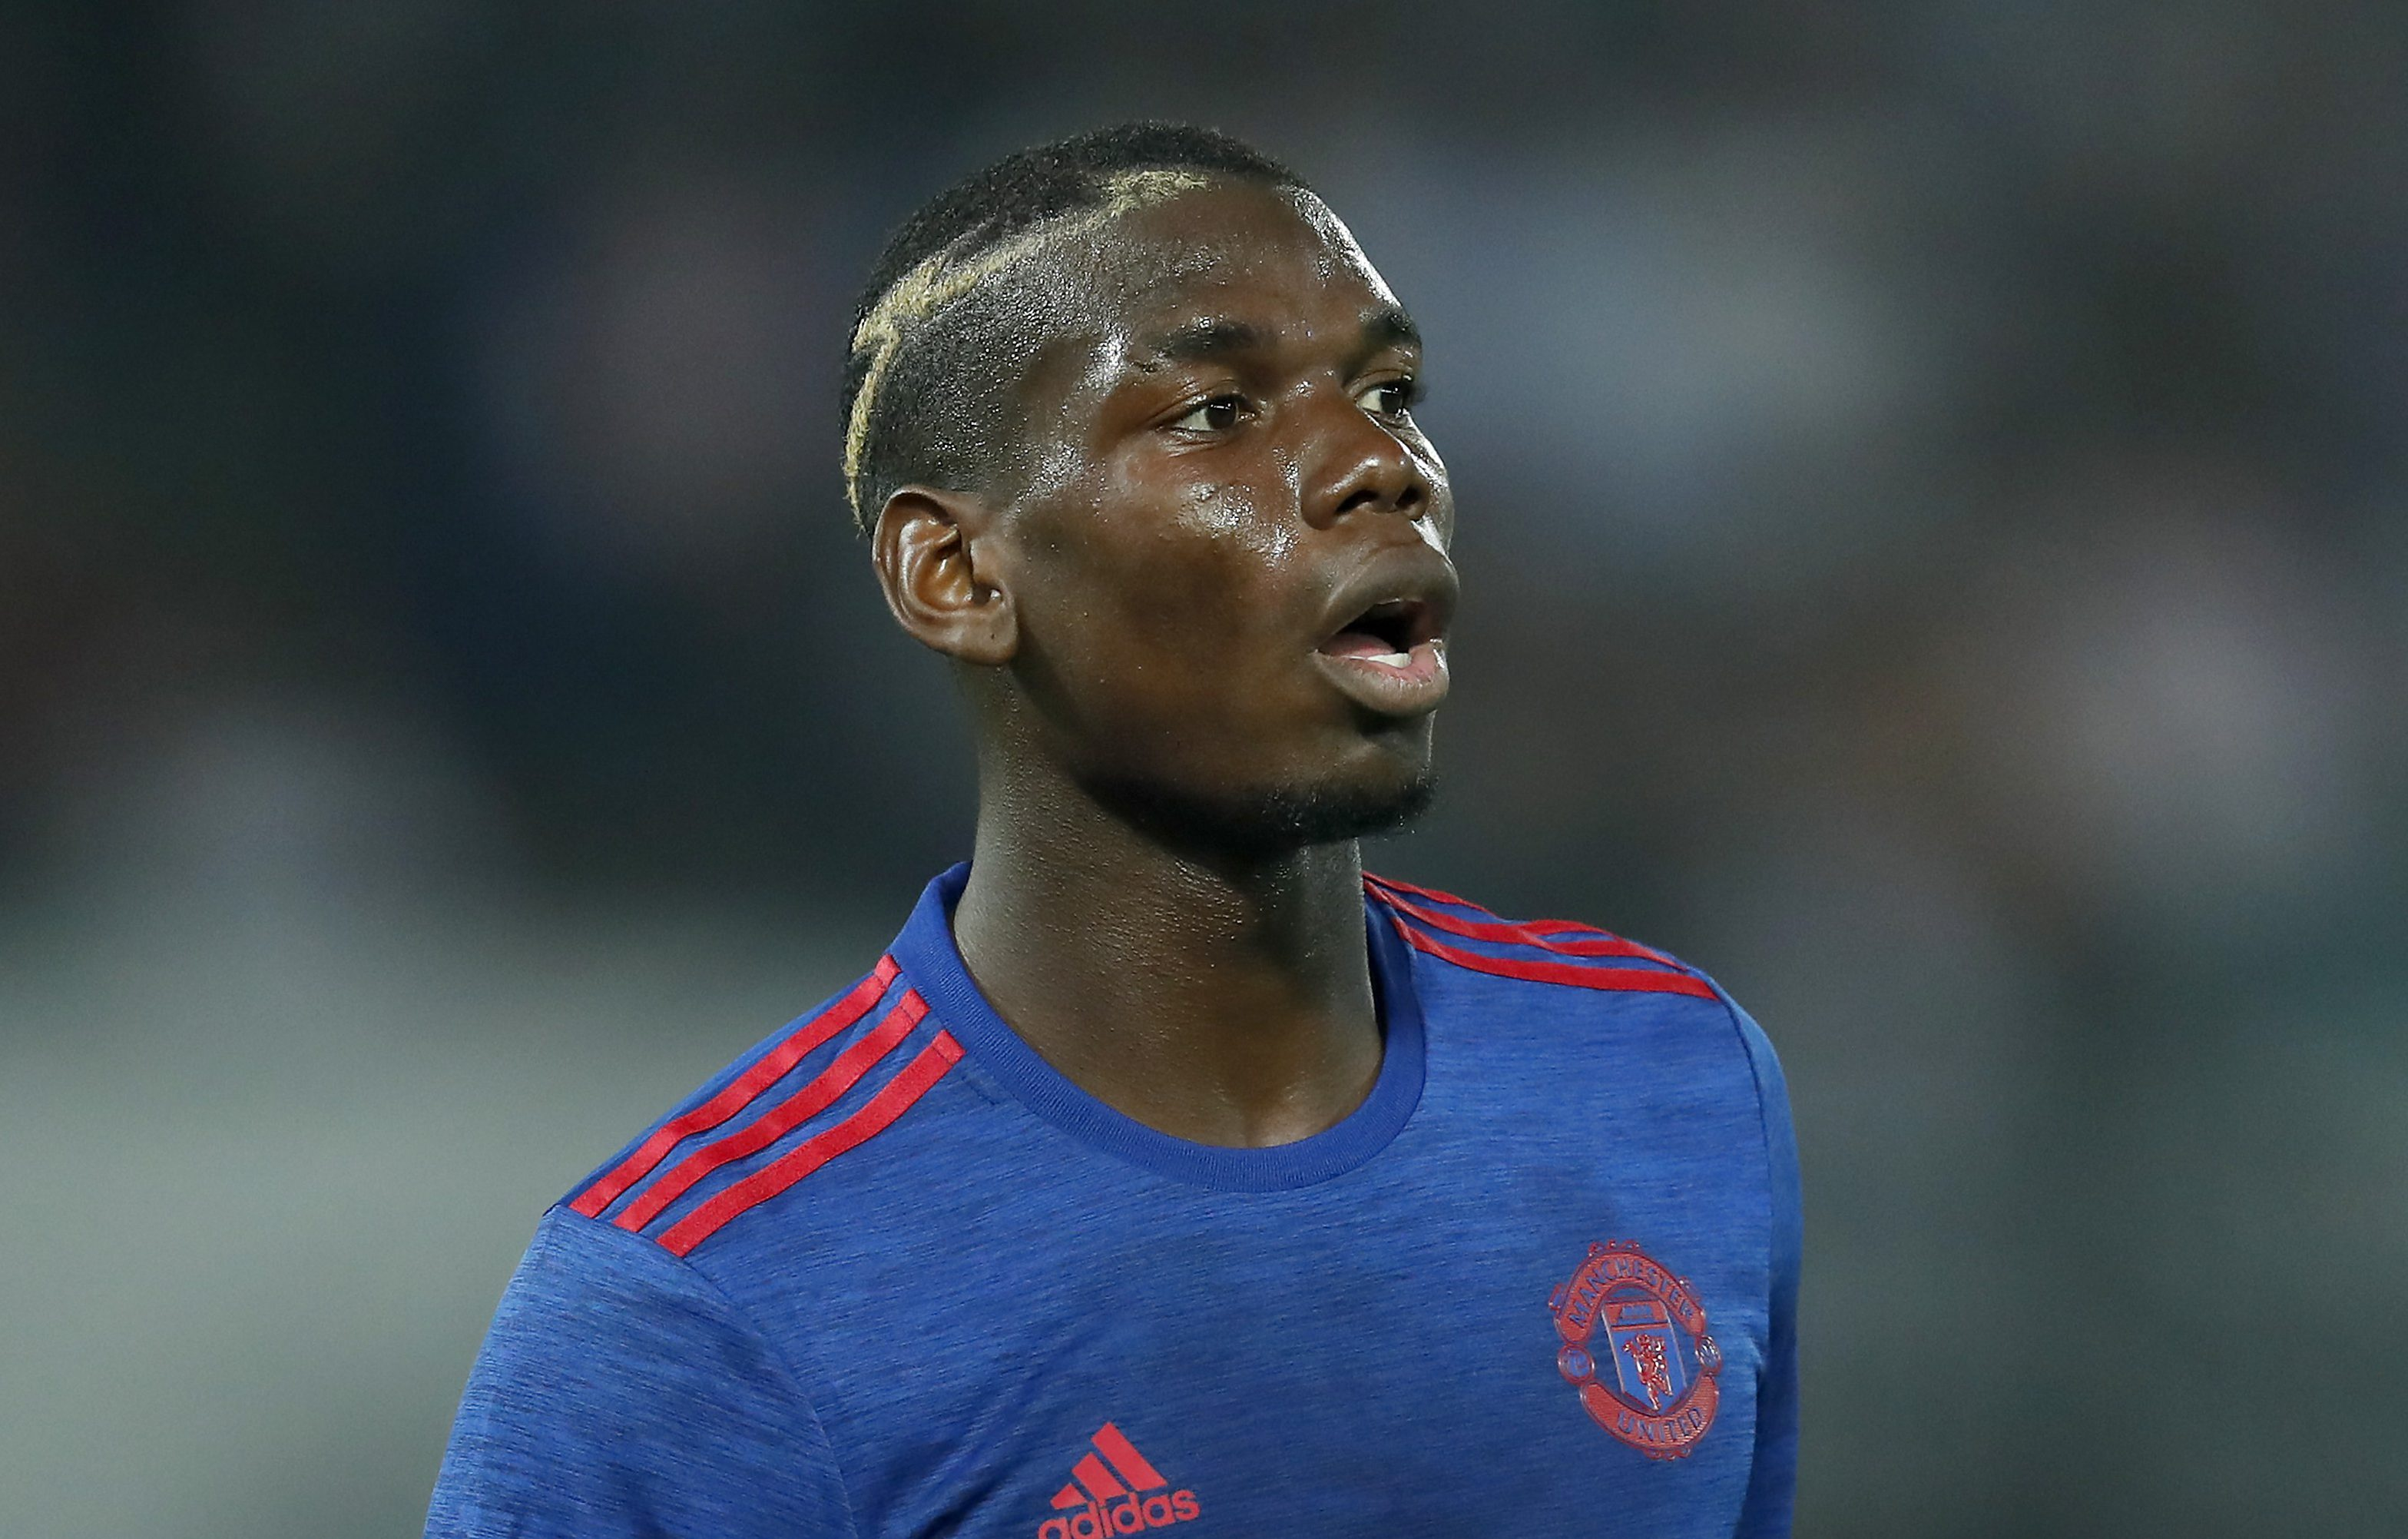 Paul Pogba was 'screaming at his team-mates' in Manchester United's defeat to Feyenoord